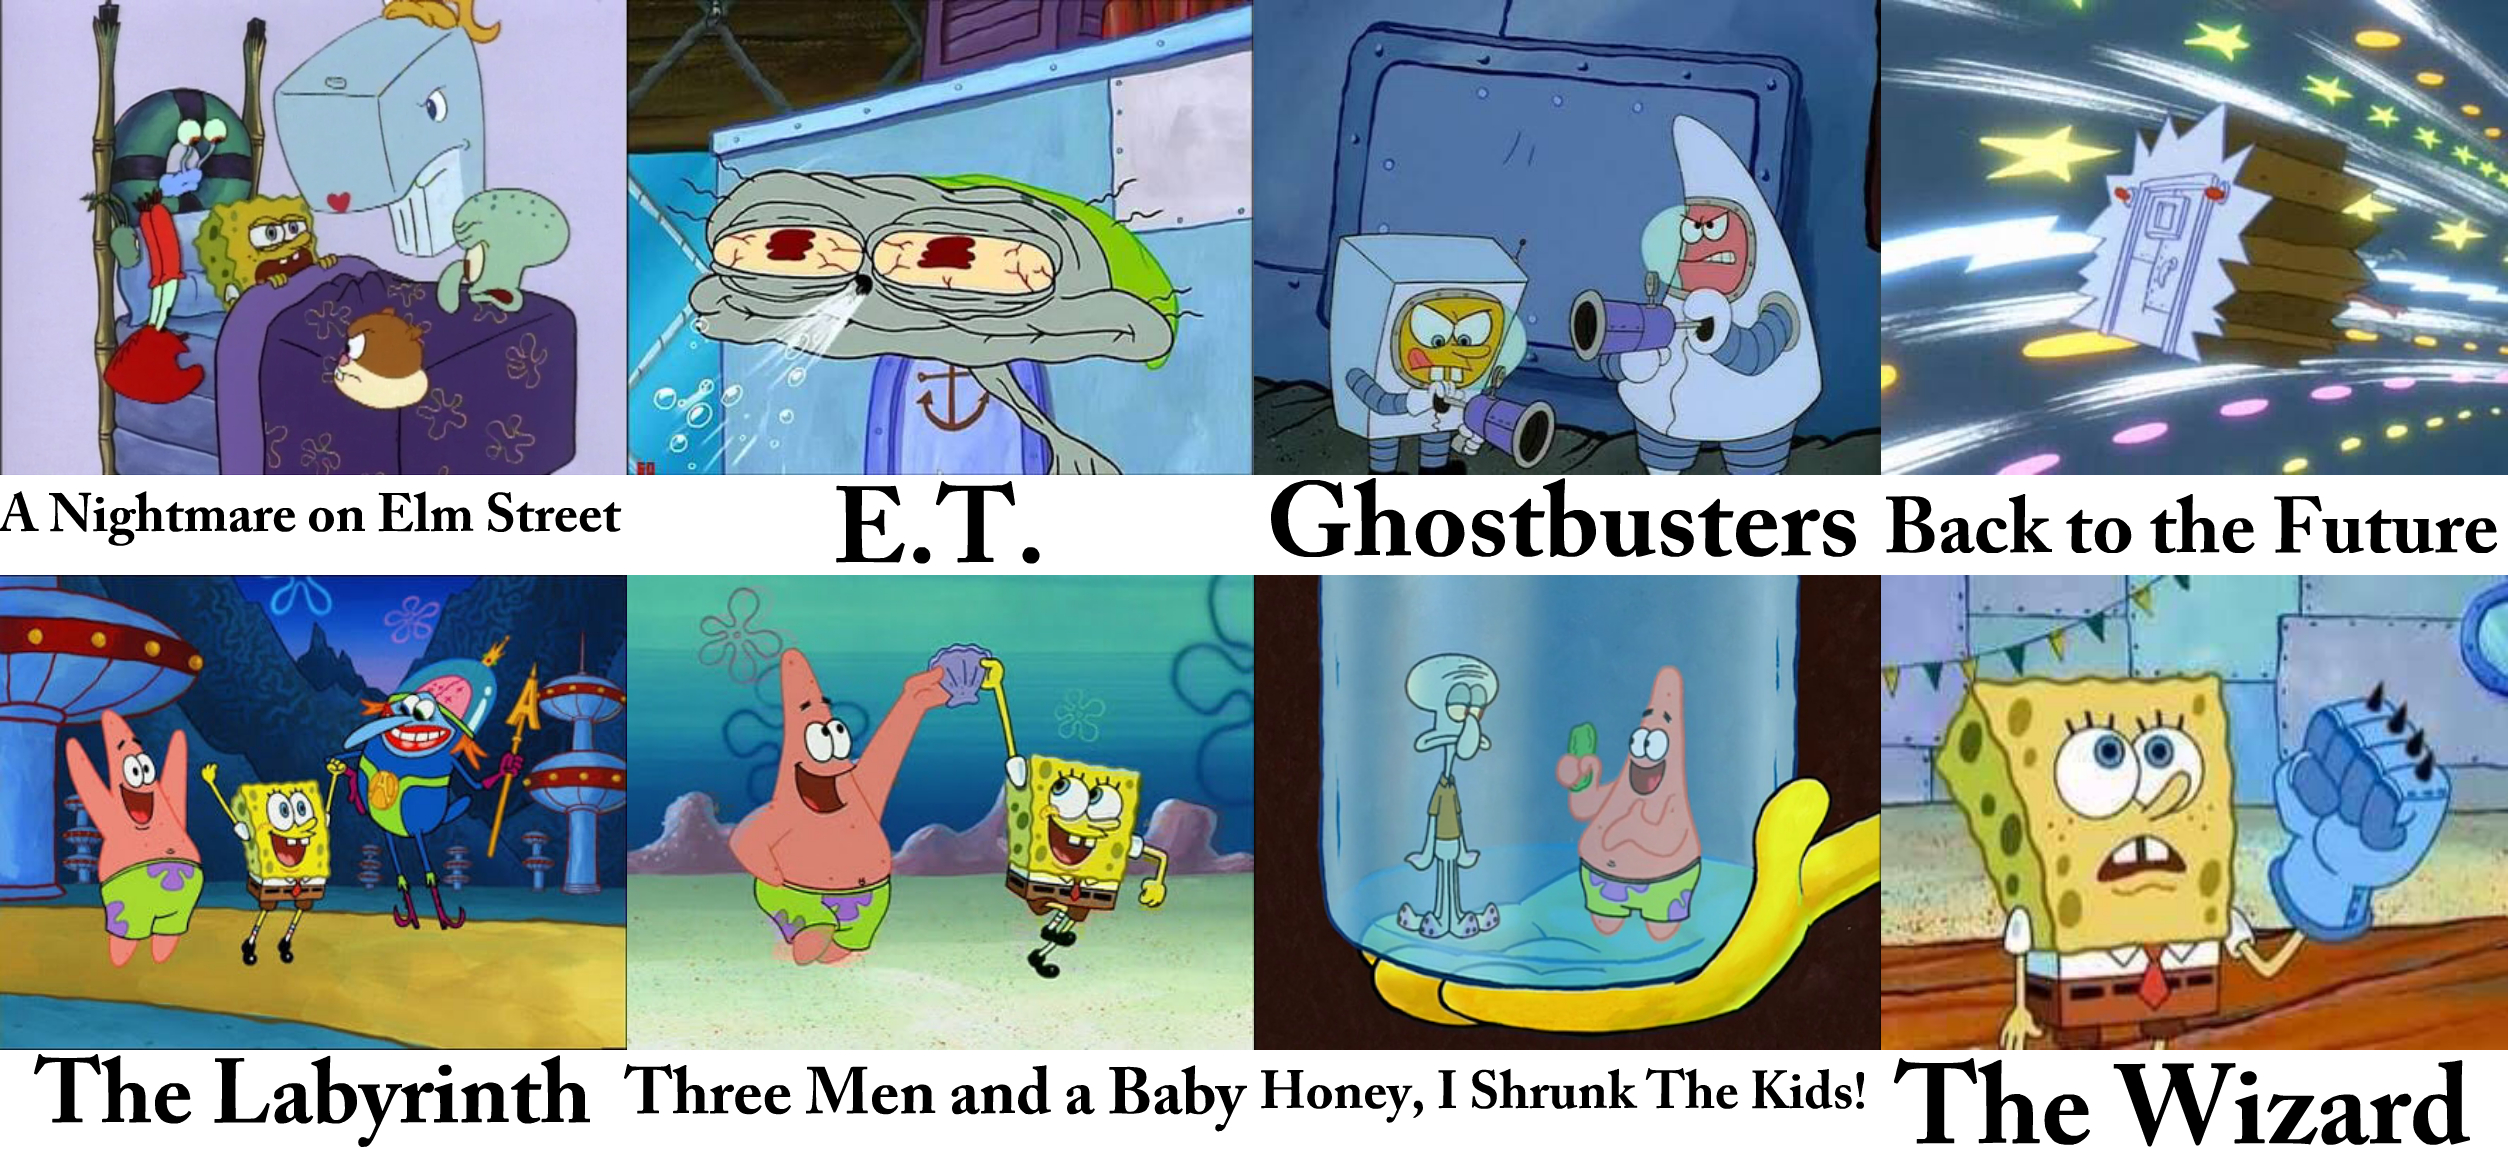 A nightmare on elm street e t ghostbusters back to the future eo run s